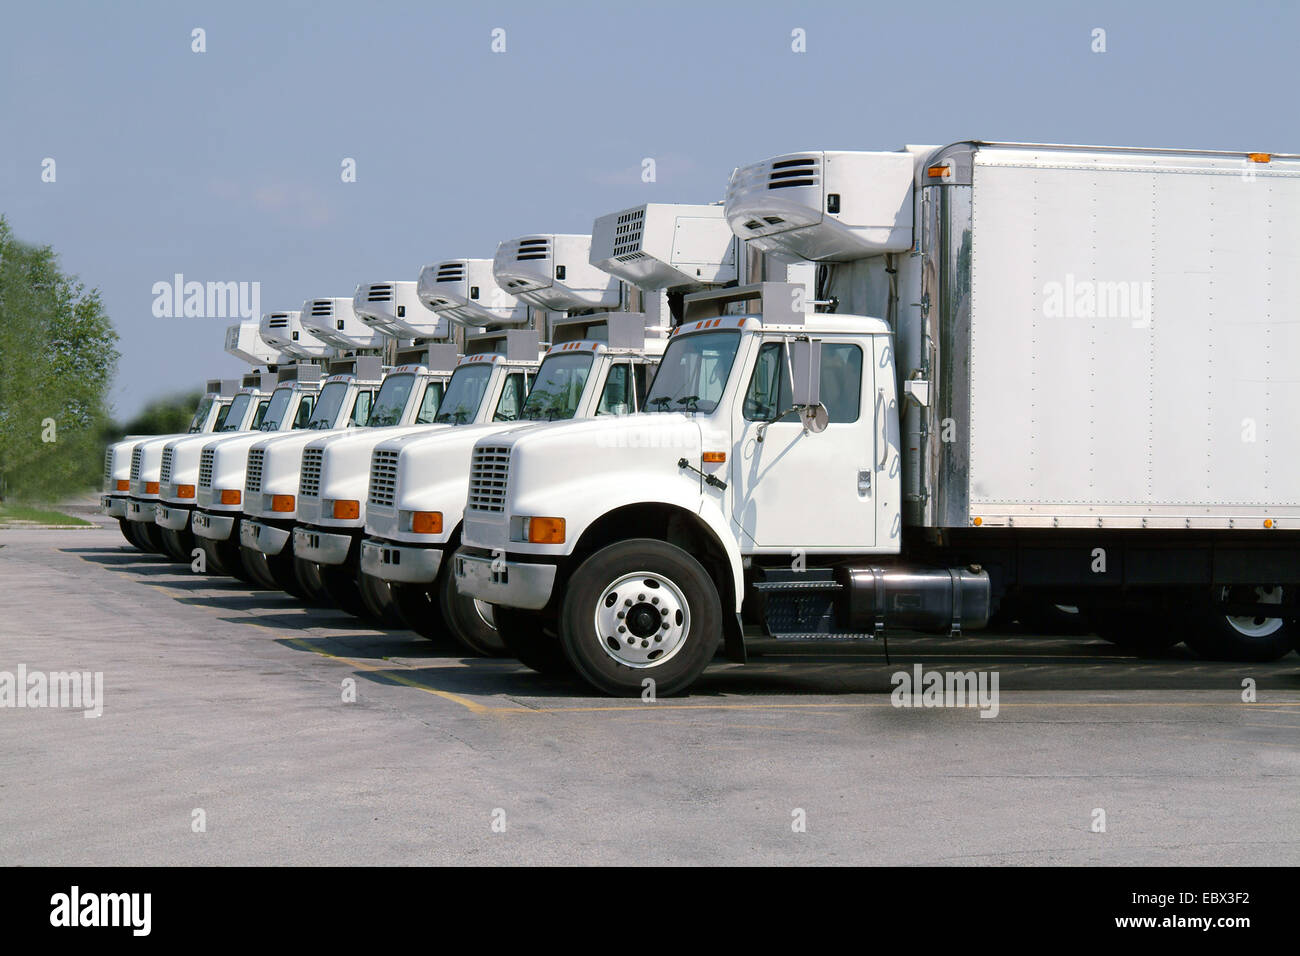 eight idenentical trucks standing in a row side by side - Stock Image